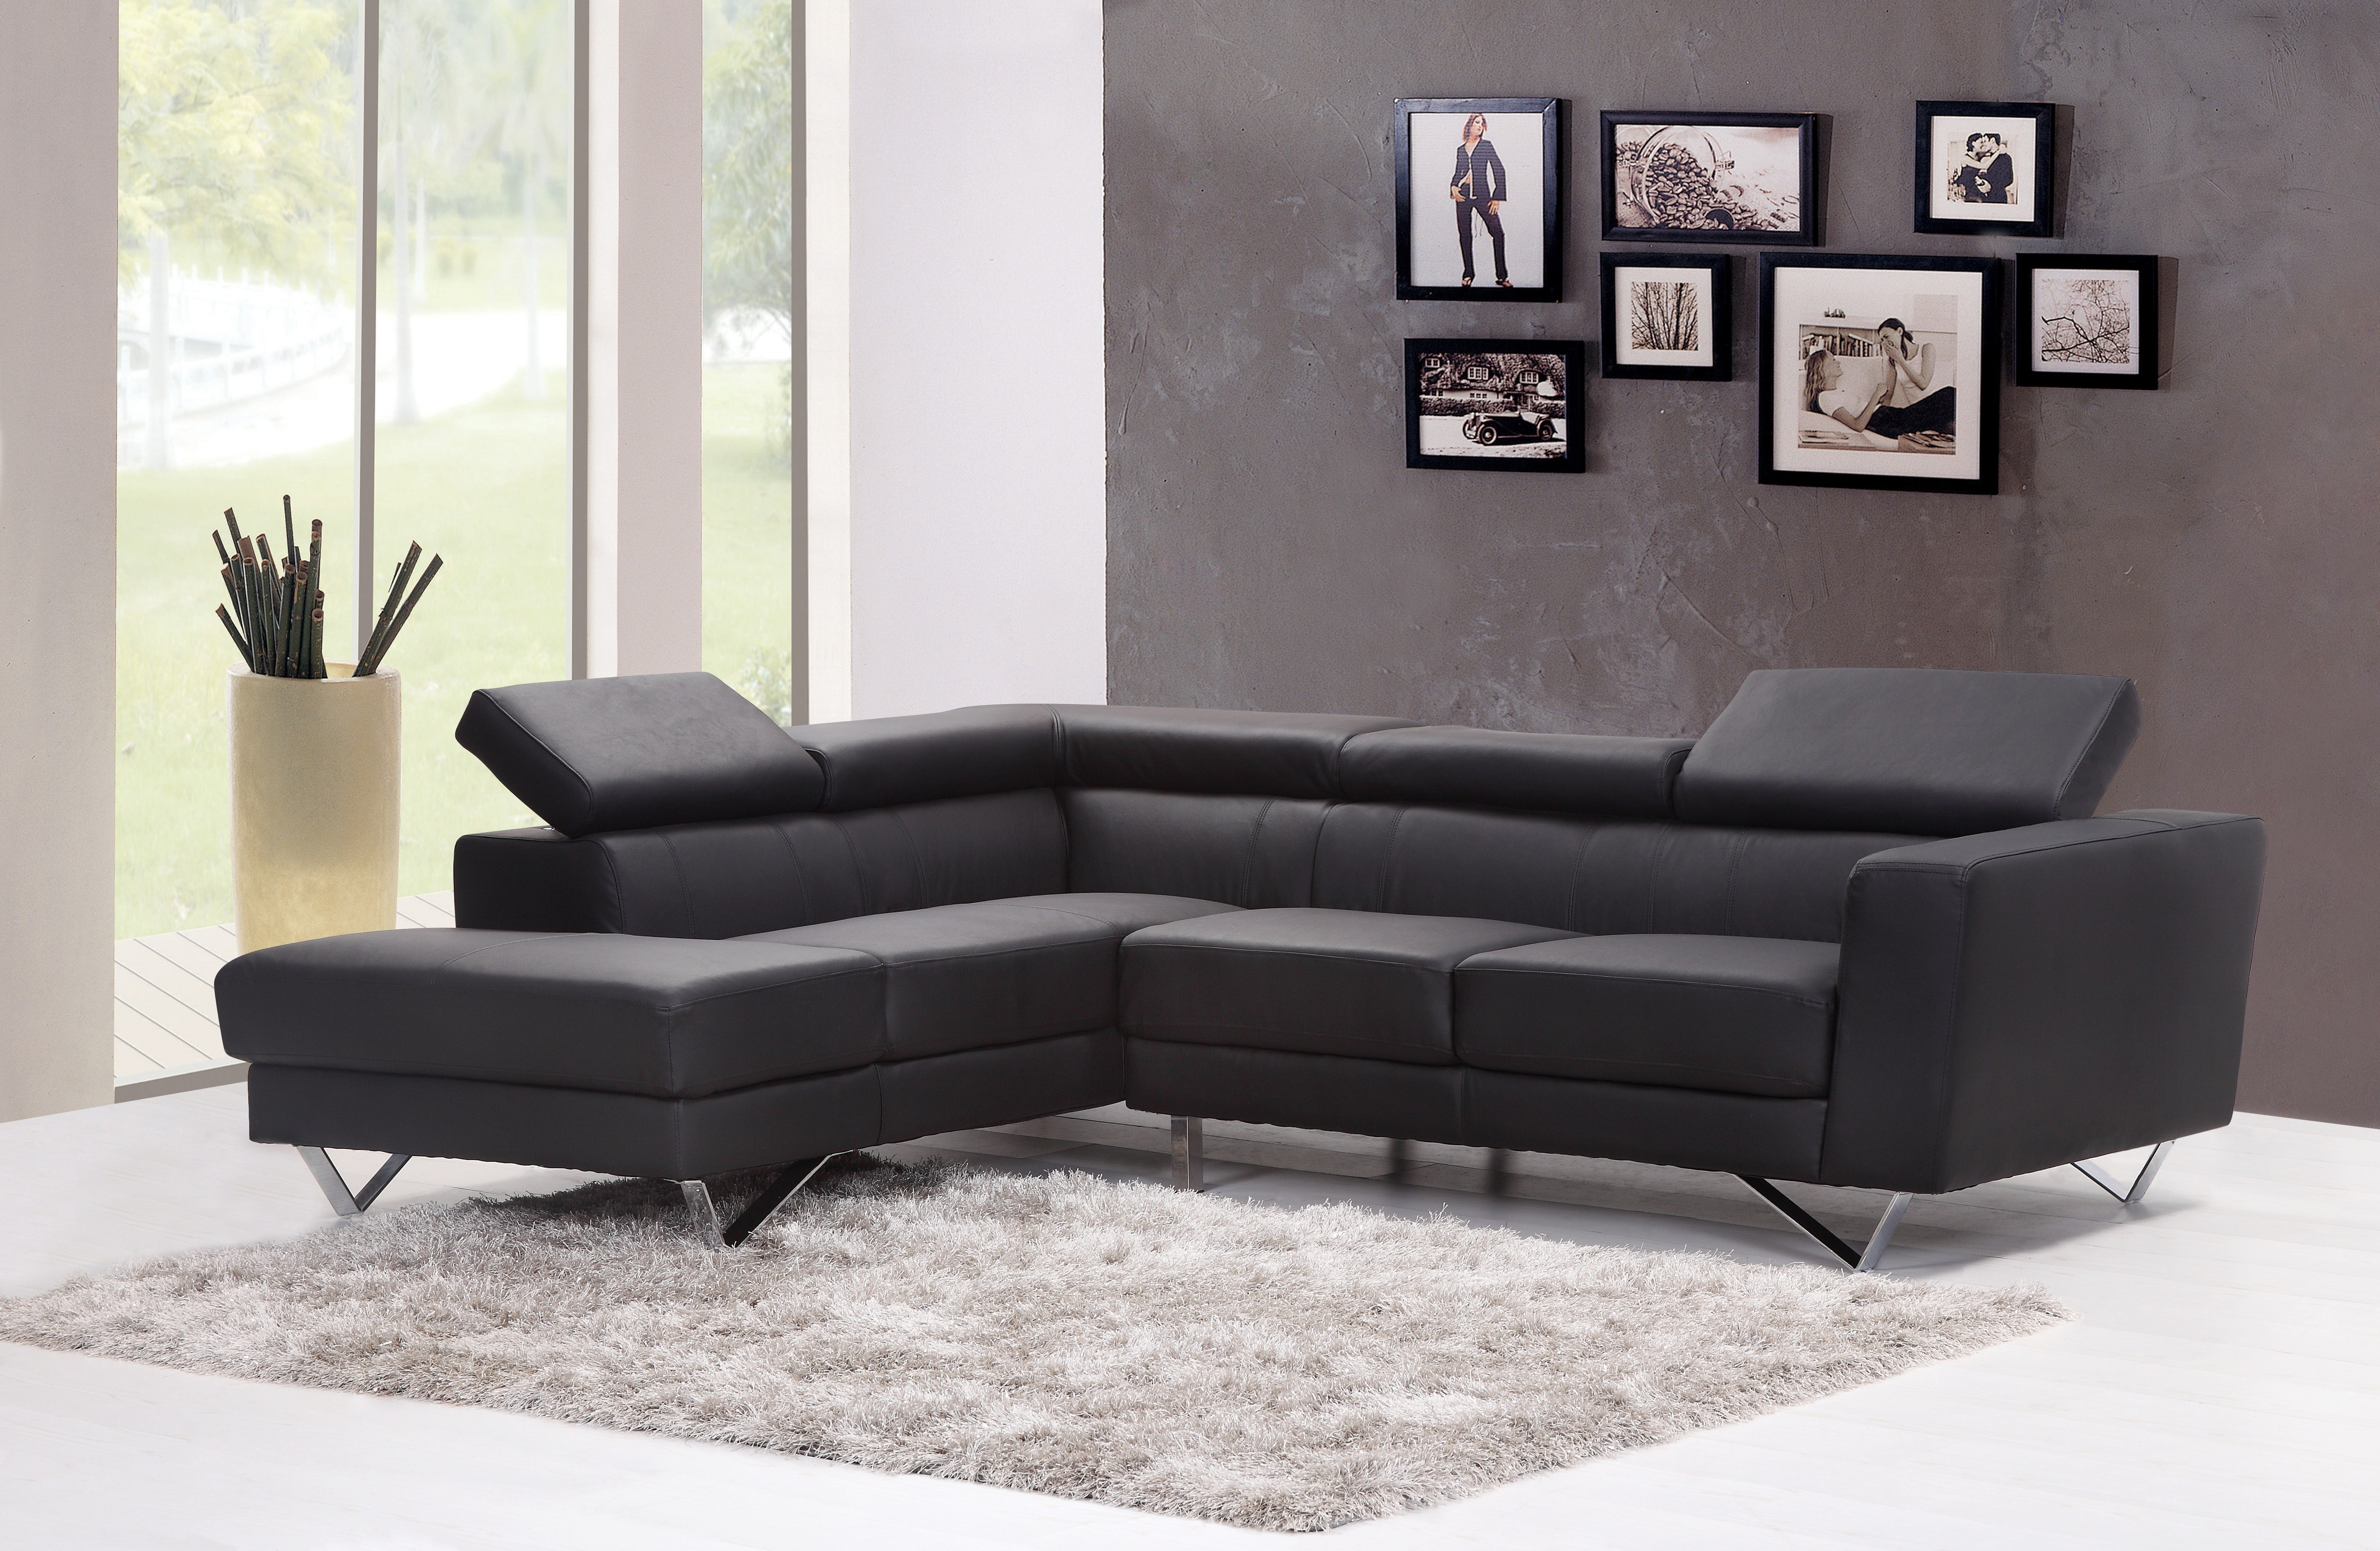 Furniture Rent to Own Store Established 7 Years